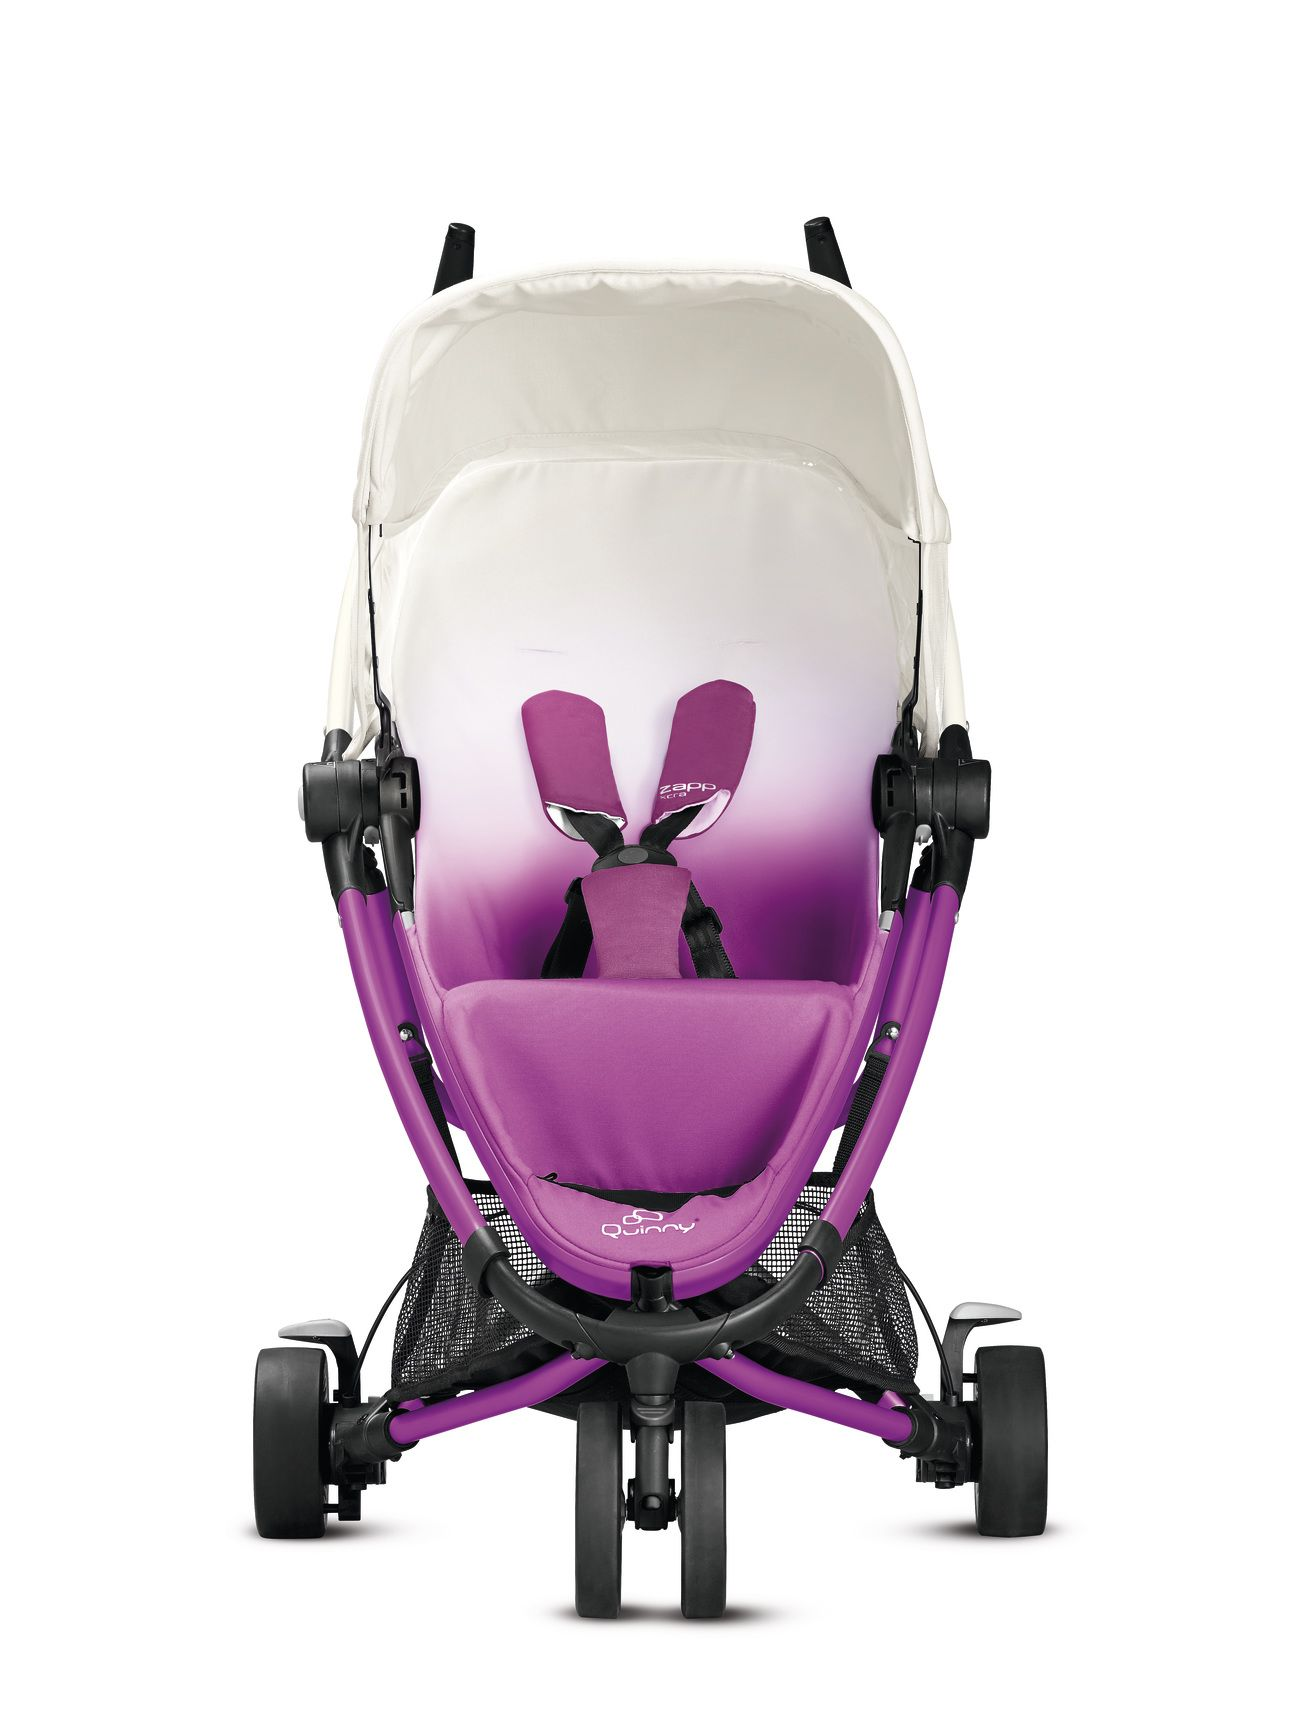 Coche Travel System Zapp Xtra 2 3r Red Rumour Syrup Edition 2014 Poussette Quinny Poussette Et